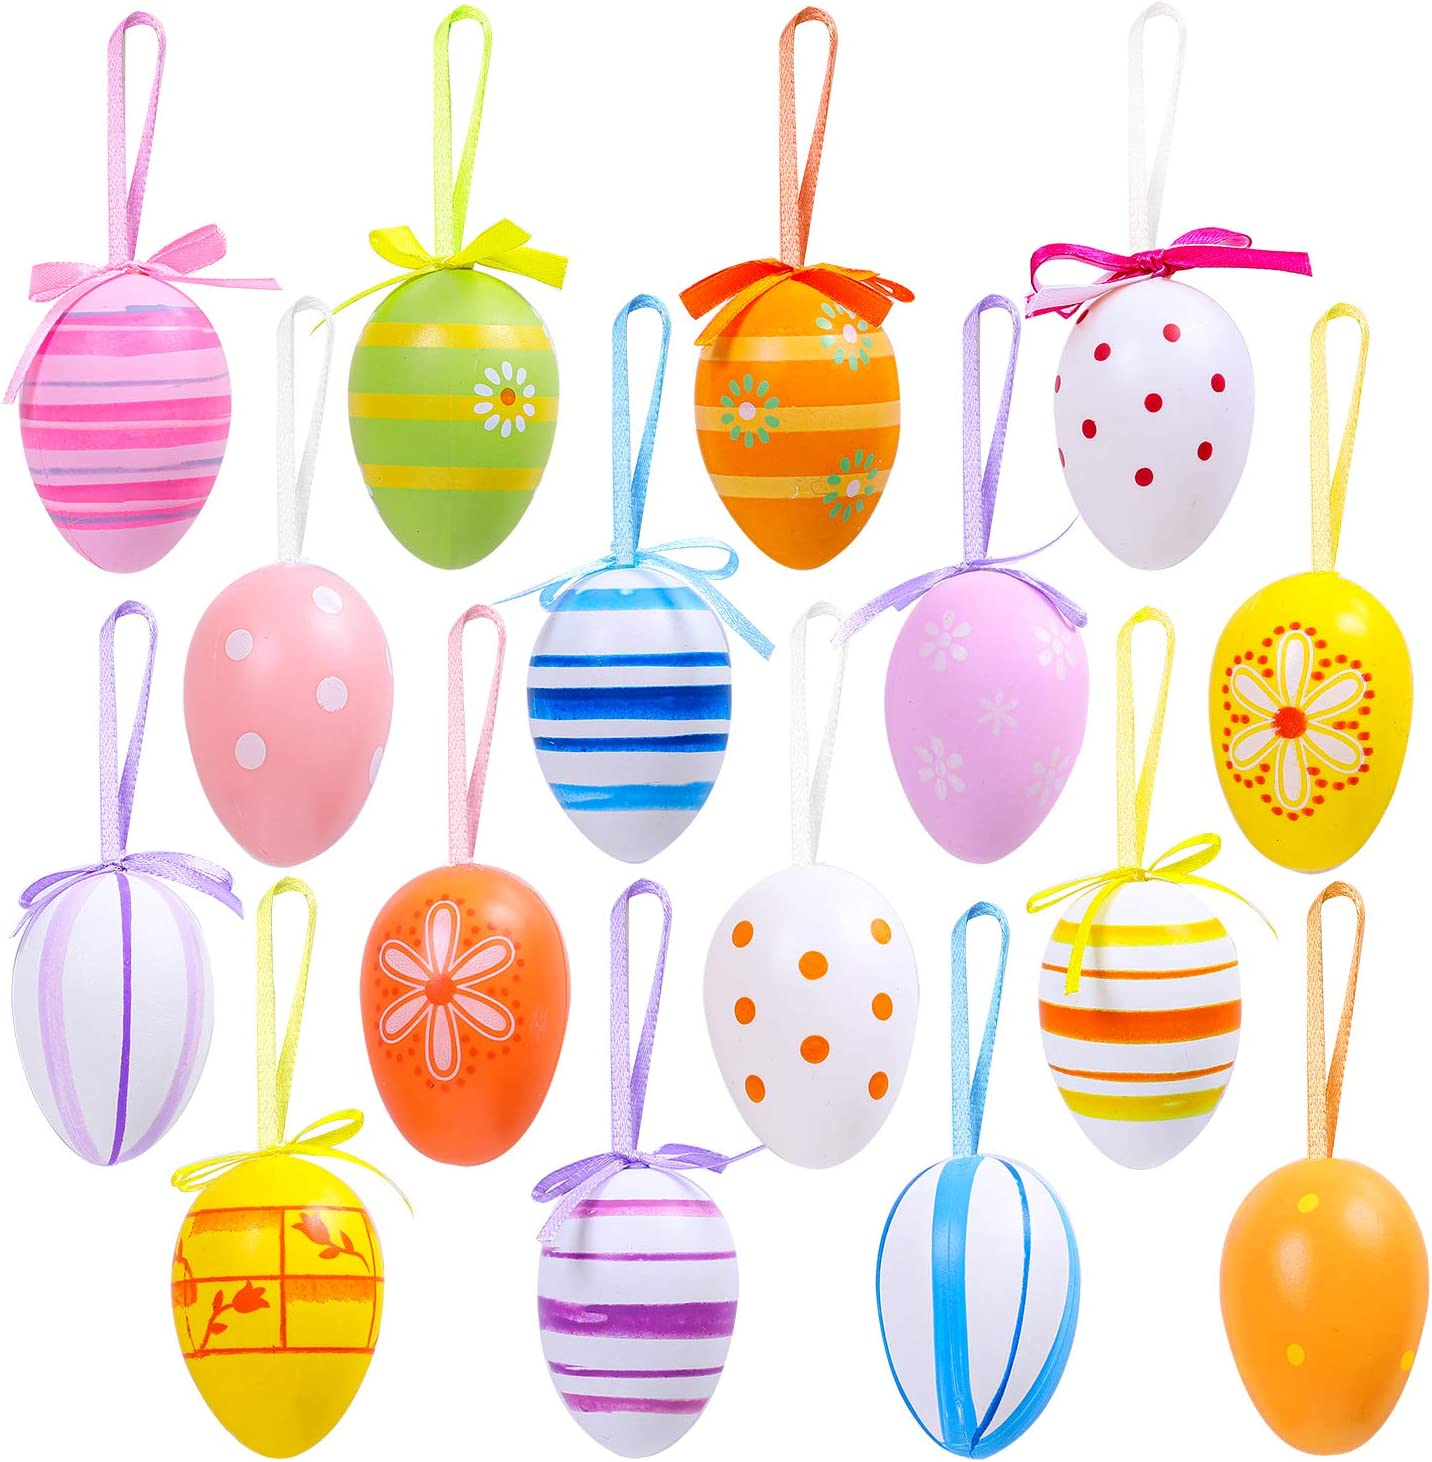 Elcoho 16 Pieces Easter Hanging Eggs Colorful Plastic Easter Eggs Easter Hanging Ornaments Easter Decoration, Random Styles